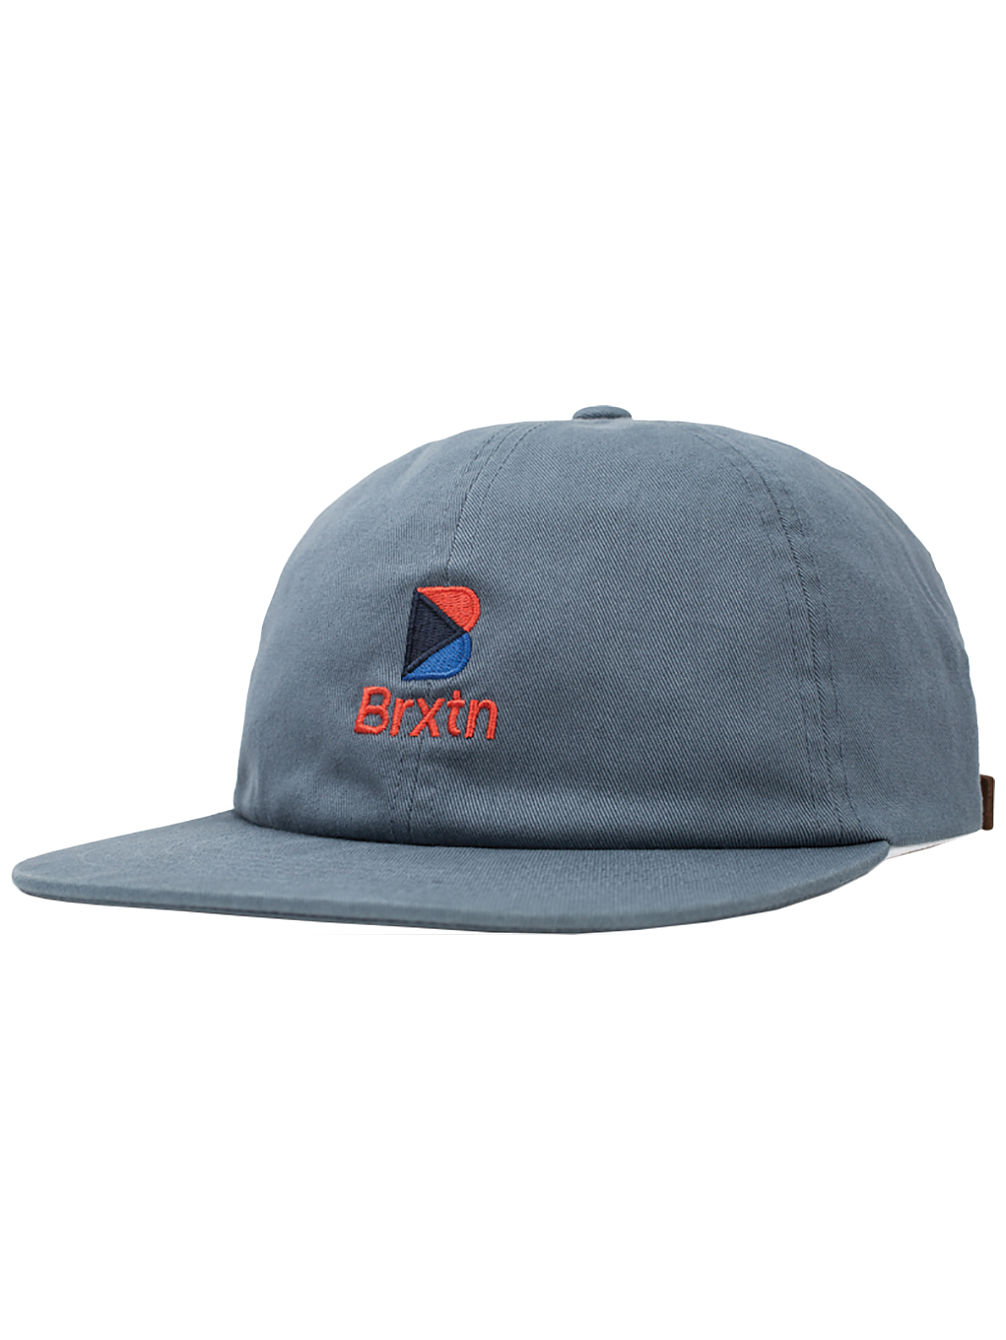 Buy Brixton Stowell MP Cap online at blue-tomato.com 7a923bb8ecb